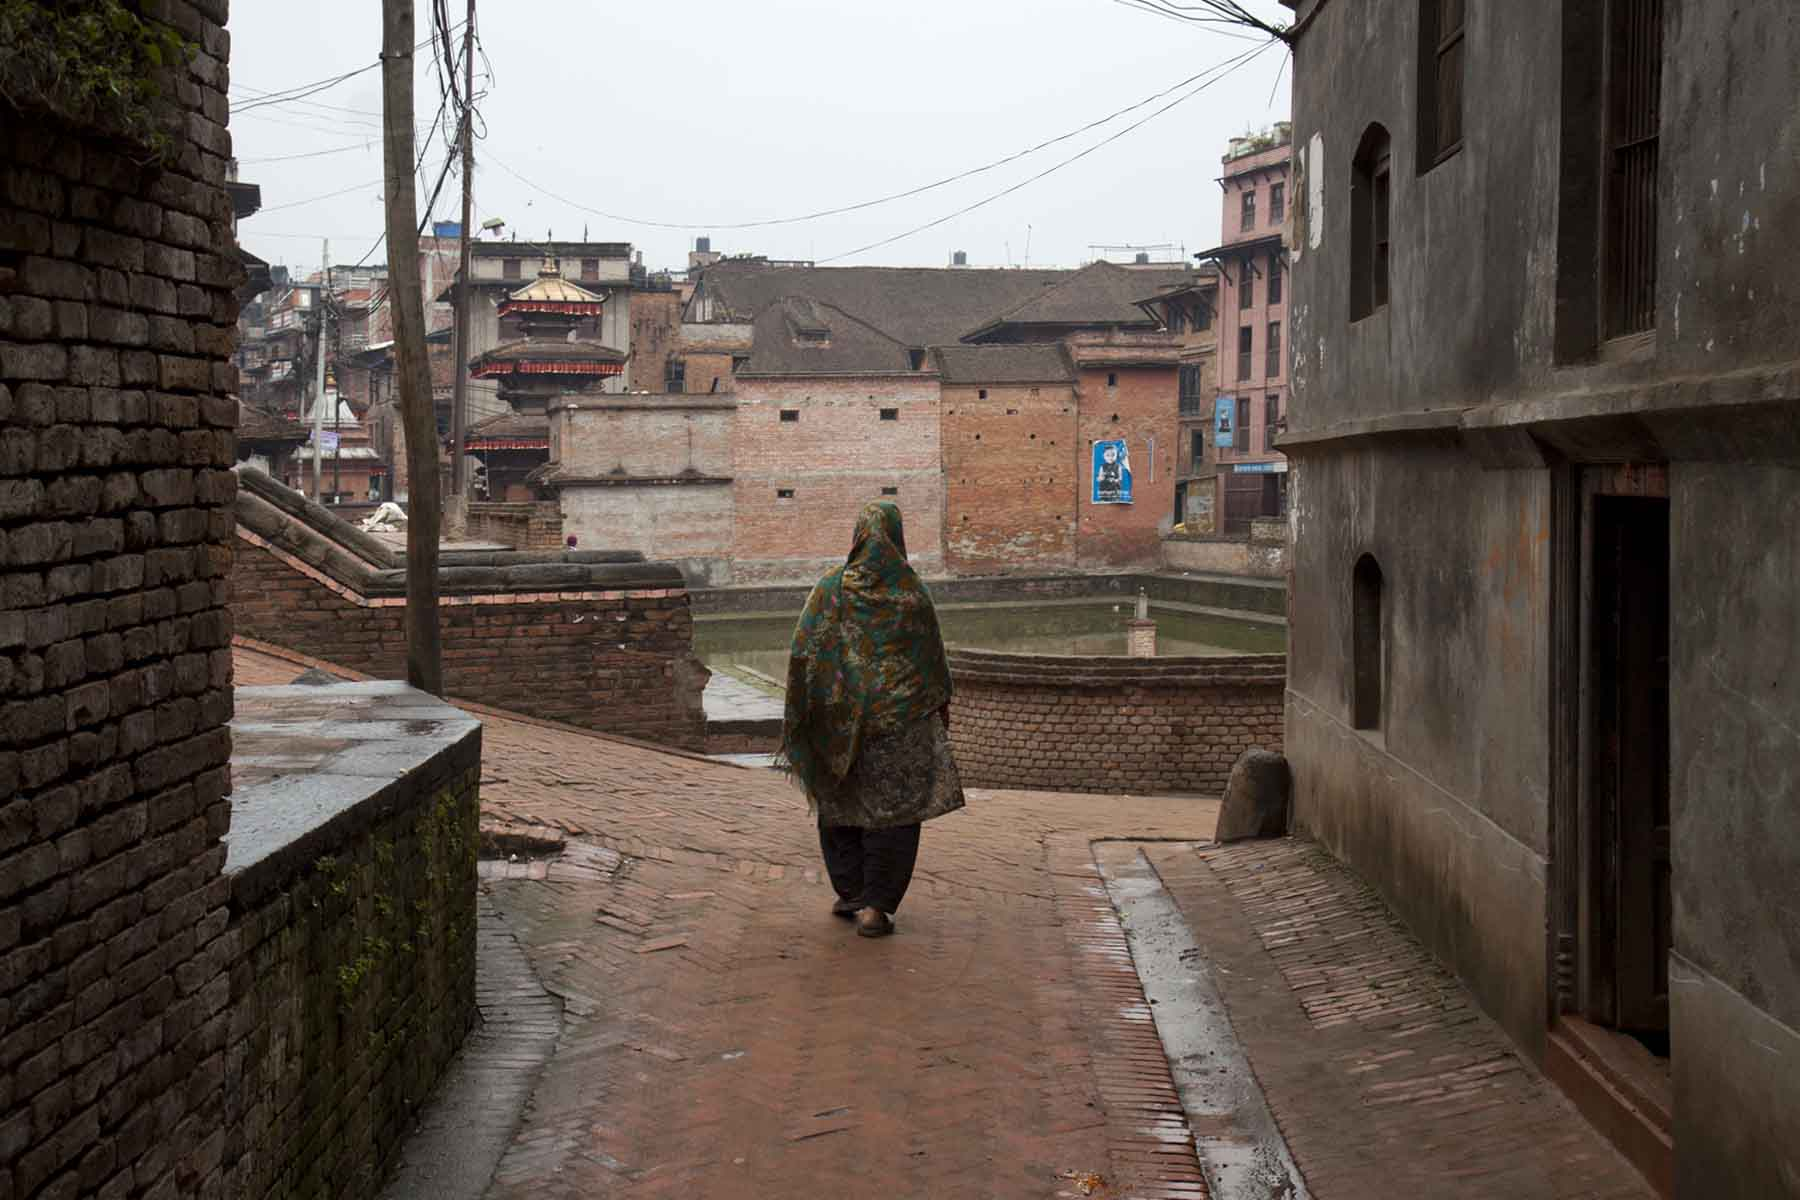 Morning in Bhaktapur, Nepal